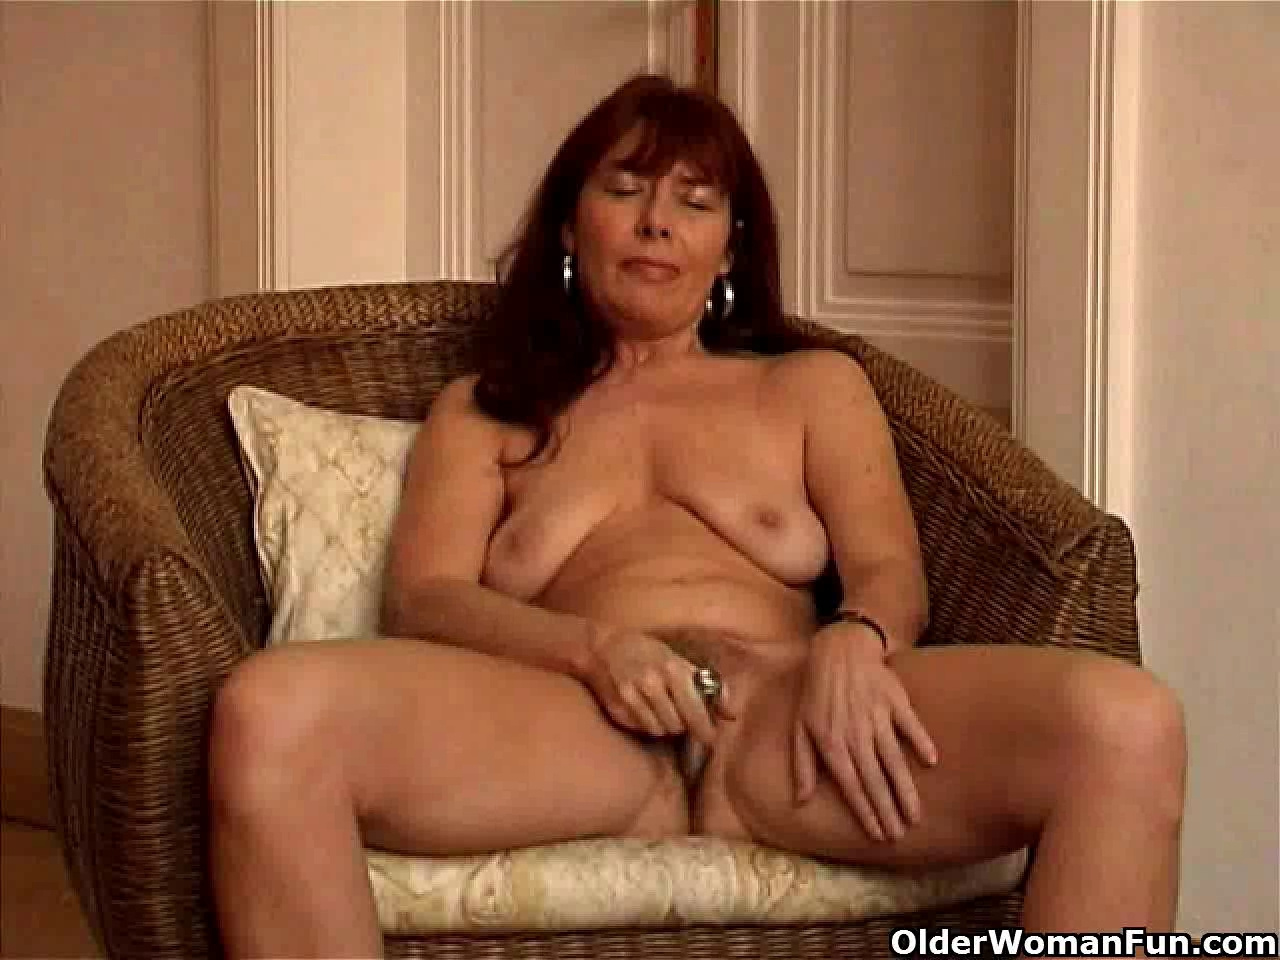 Saggy granny Sara works her bushy love tunnel with a sex-toy Erik brynjolfsson wife sexual dysfunction